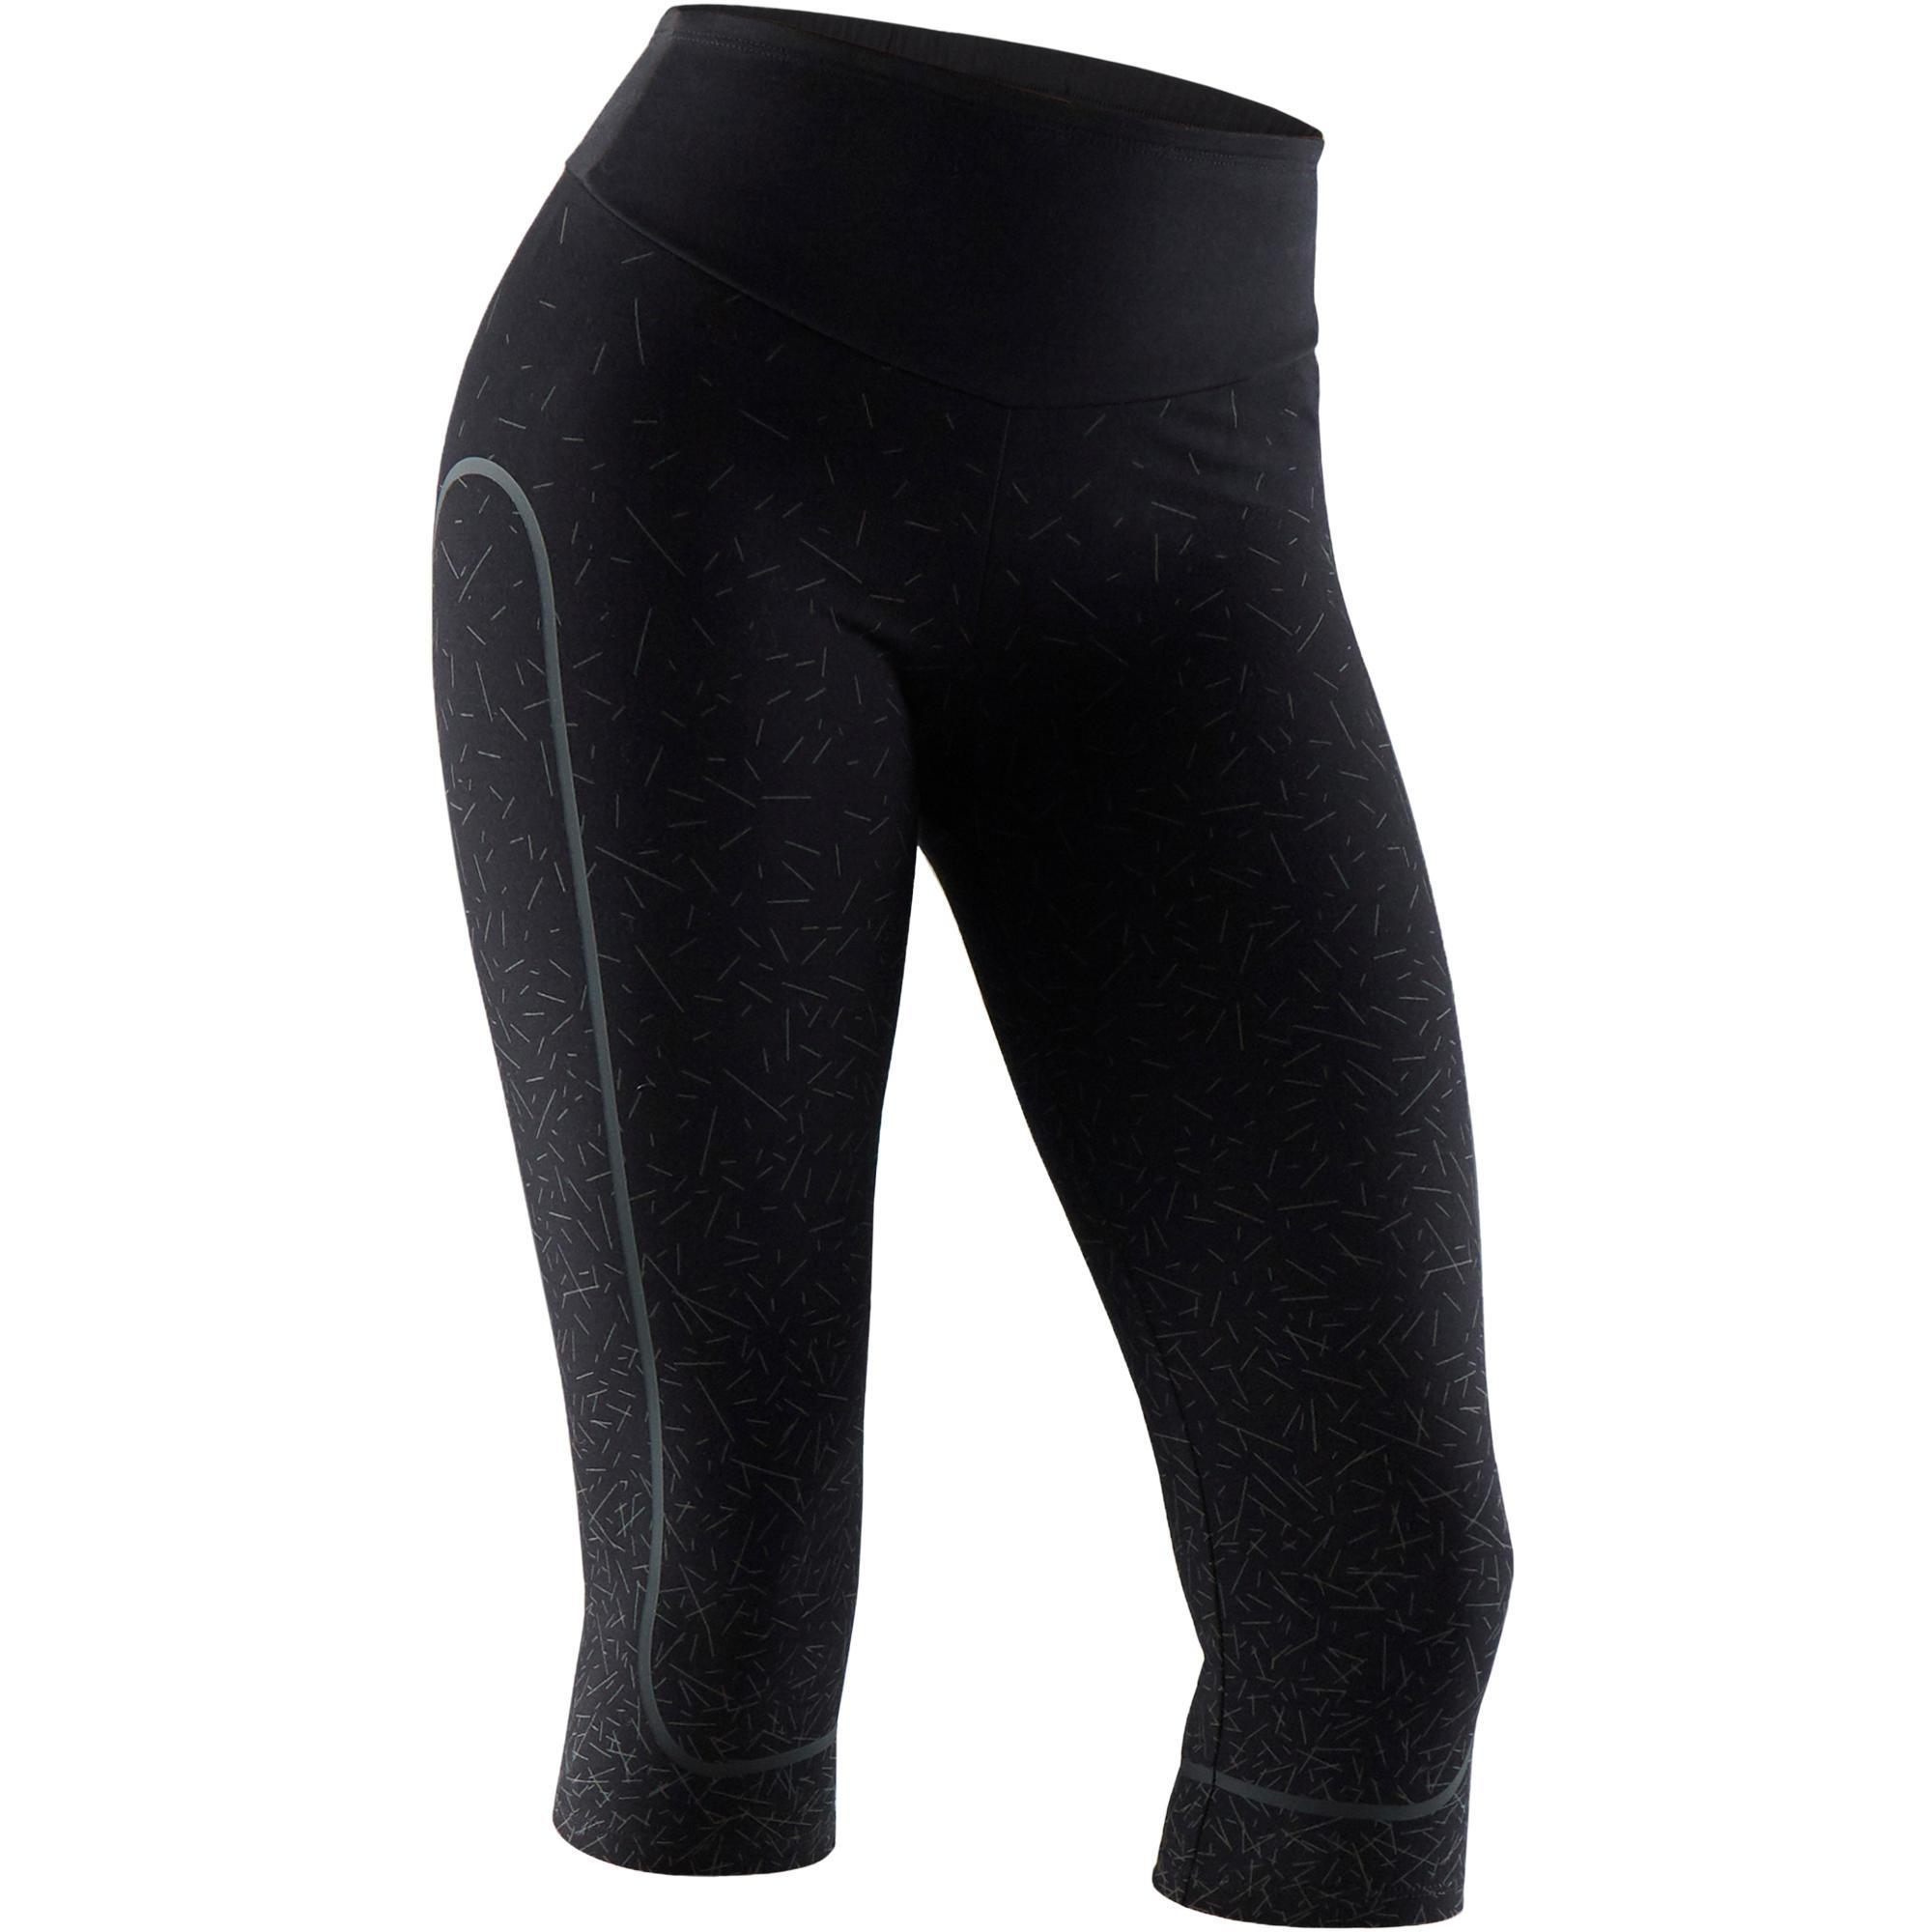 779e74c5c4b Domyos Dameskuitbroek 900 voor gym, stretching en pilates slim fit